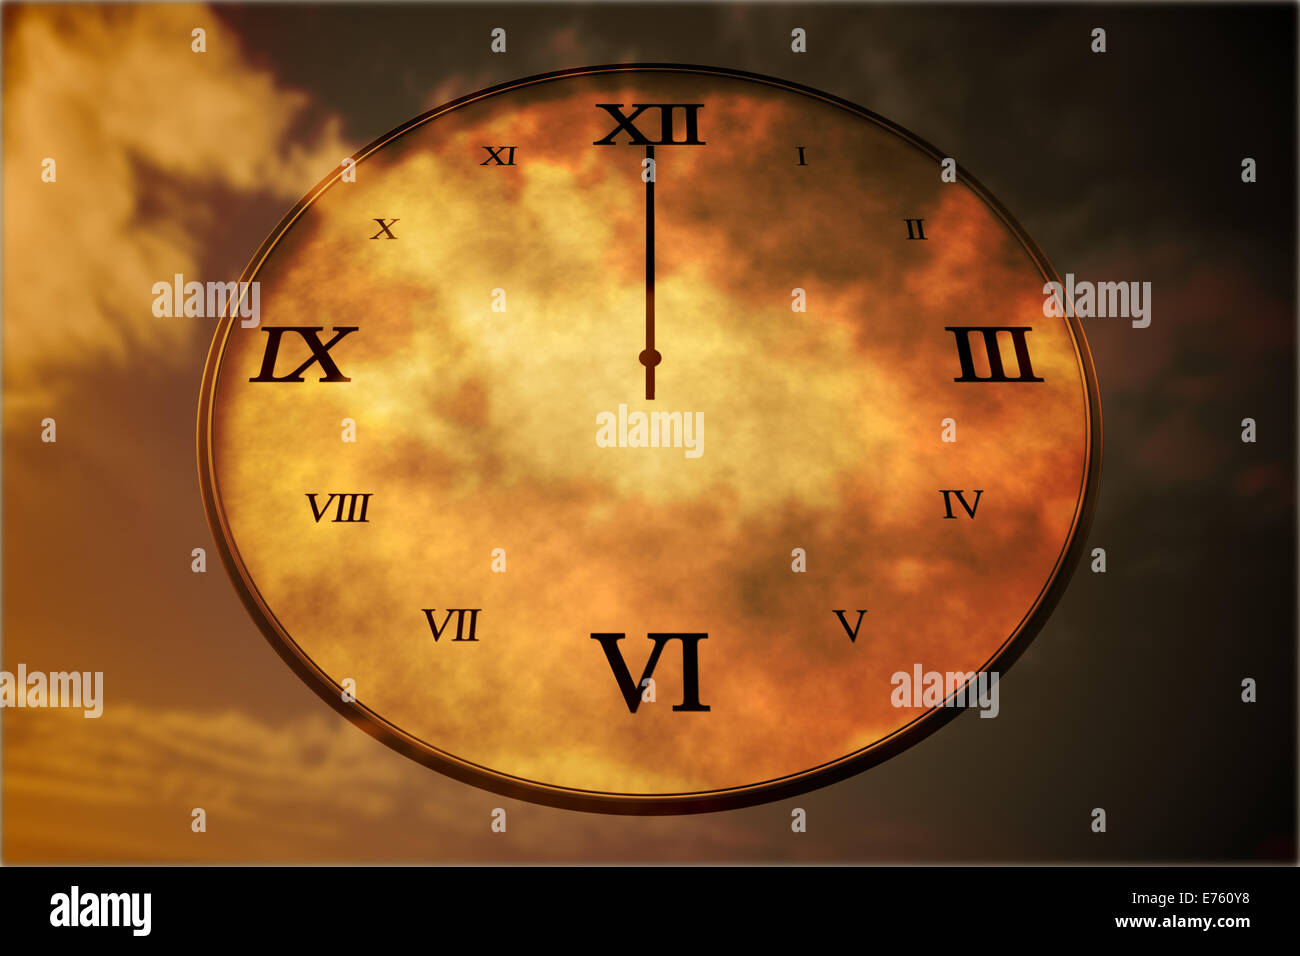 Digitally generated roman numeral clock - Stock Image